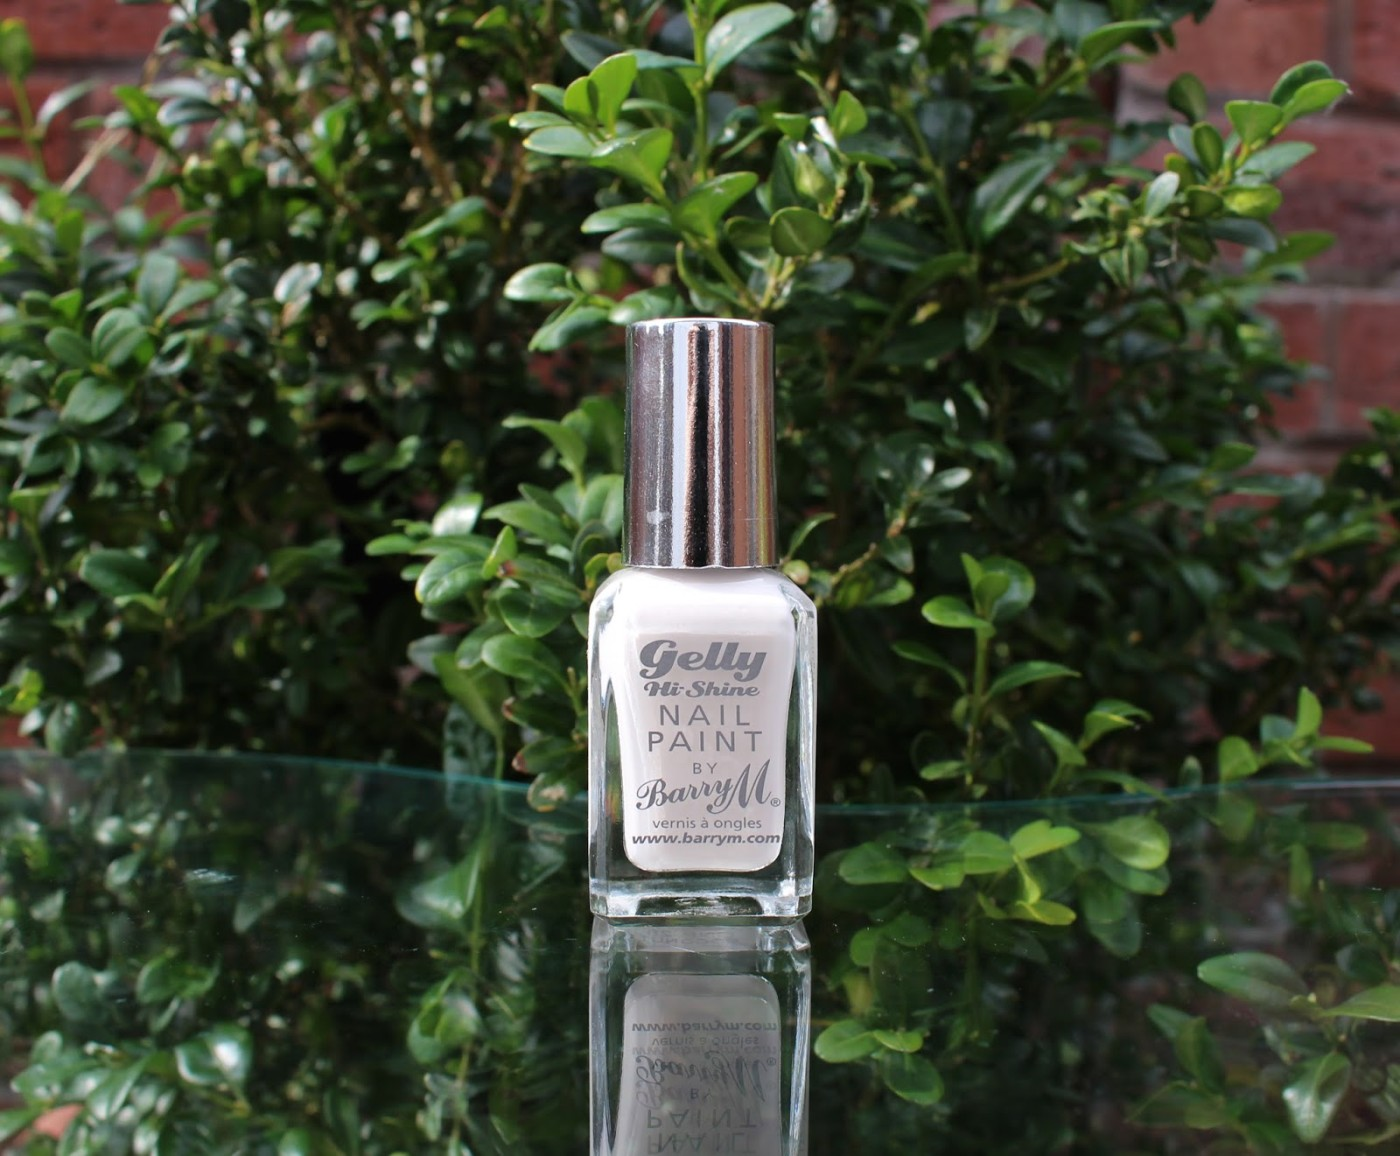 barry m gel nail polish, barry m, barry m coconut, barry m hi shine gel nail polish, off white nail polish, nail polish, nail varnish, through chelsea's eyes,